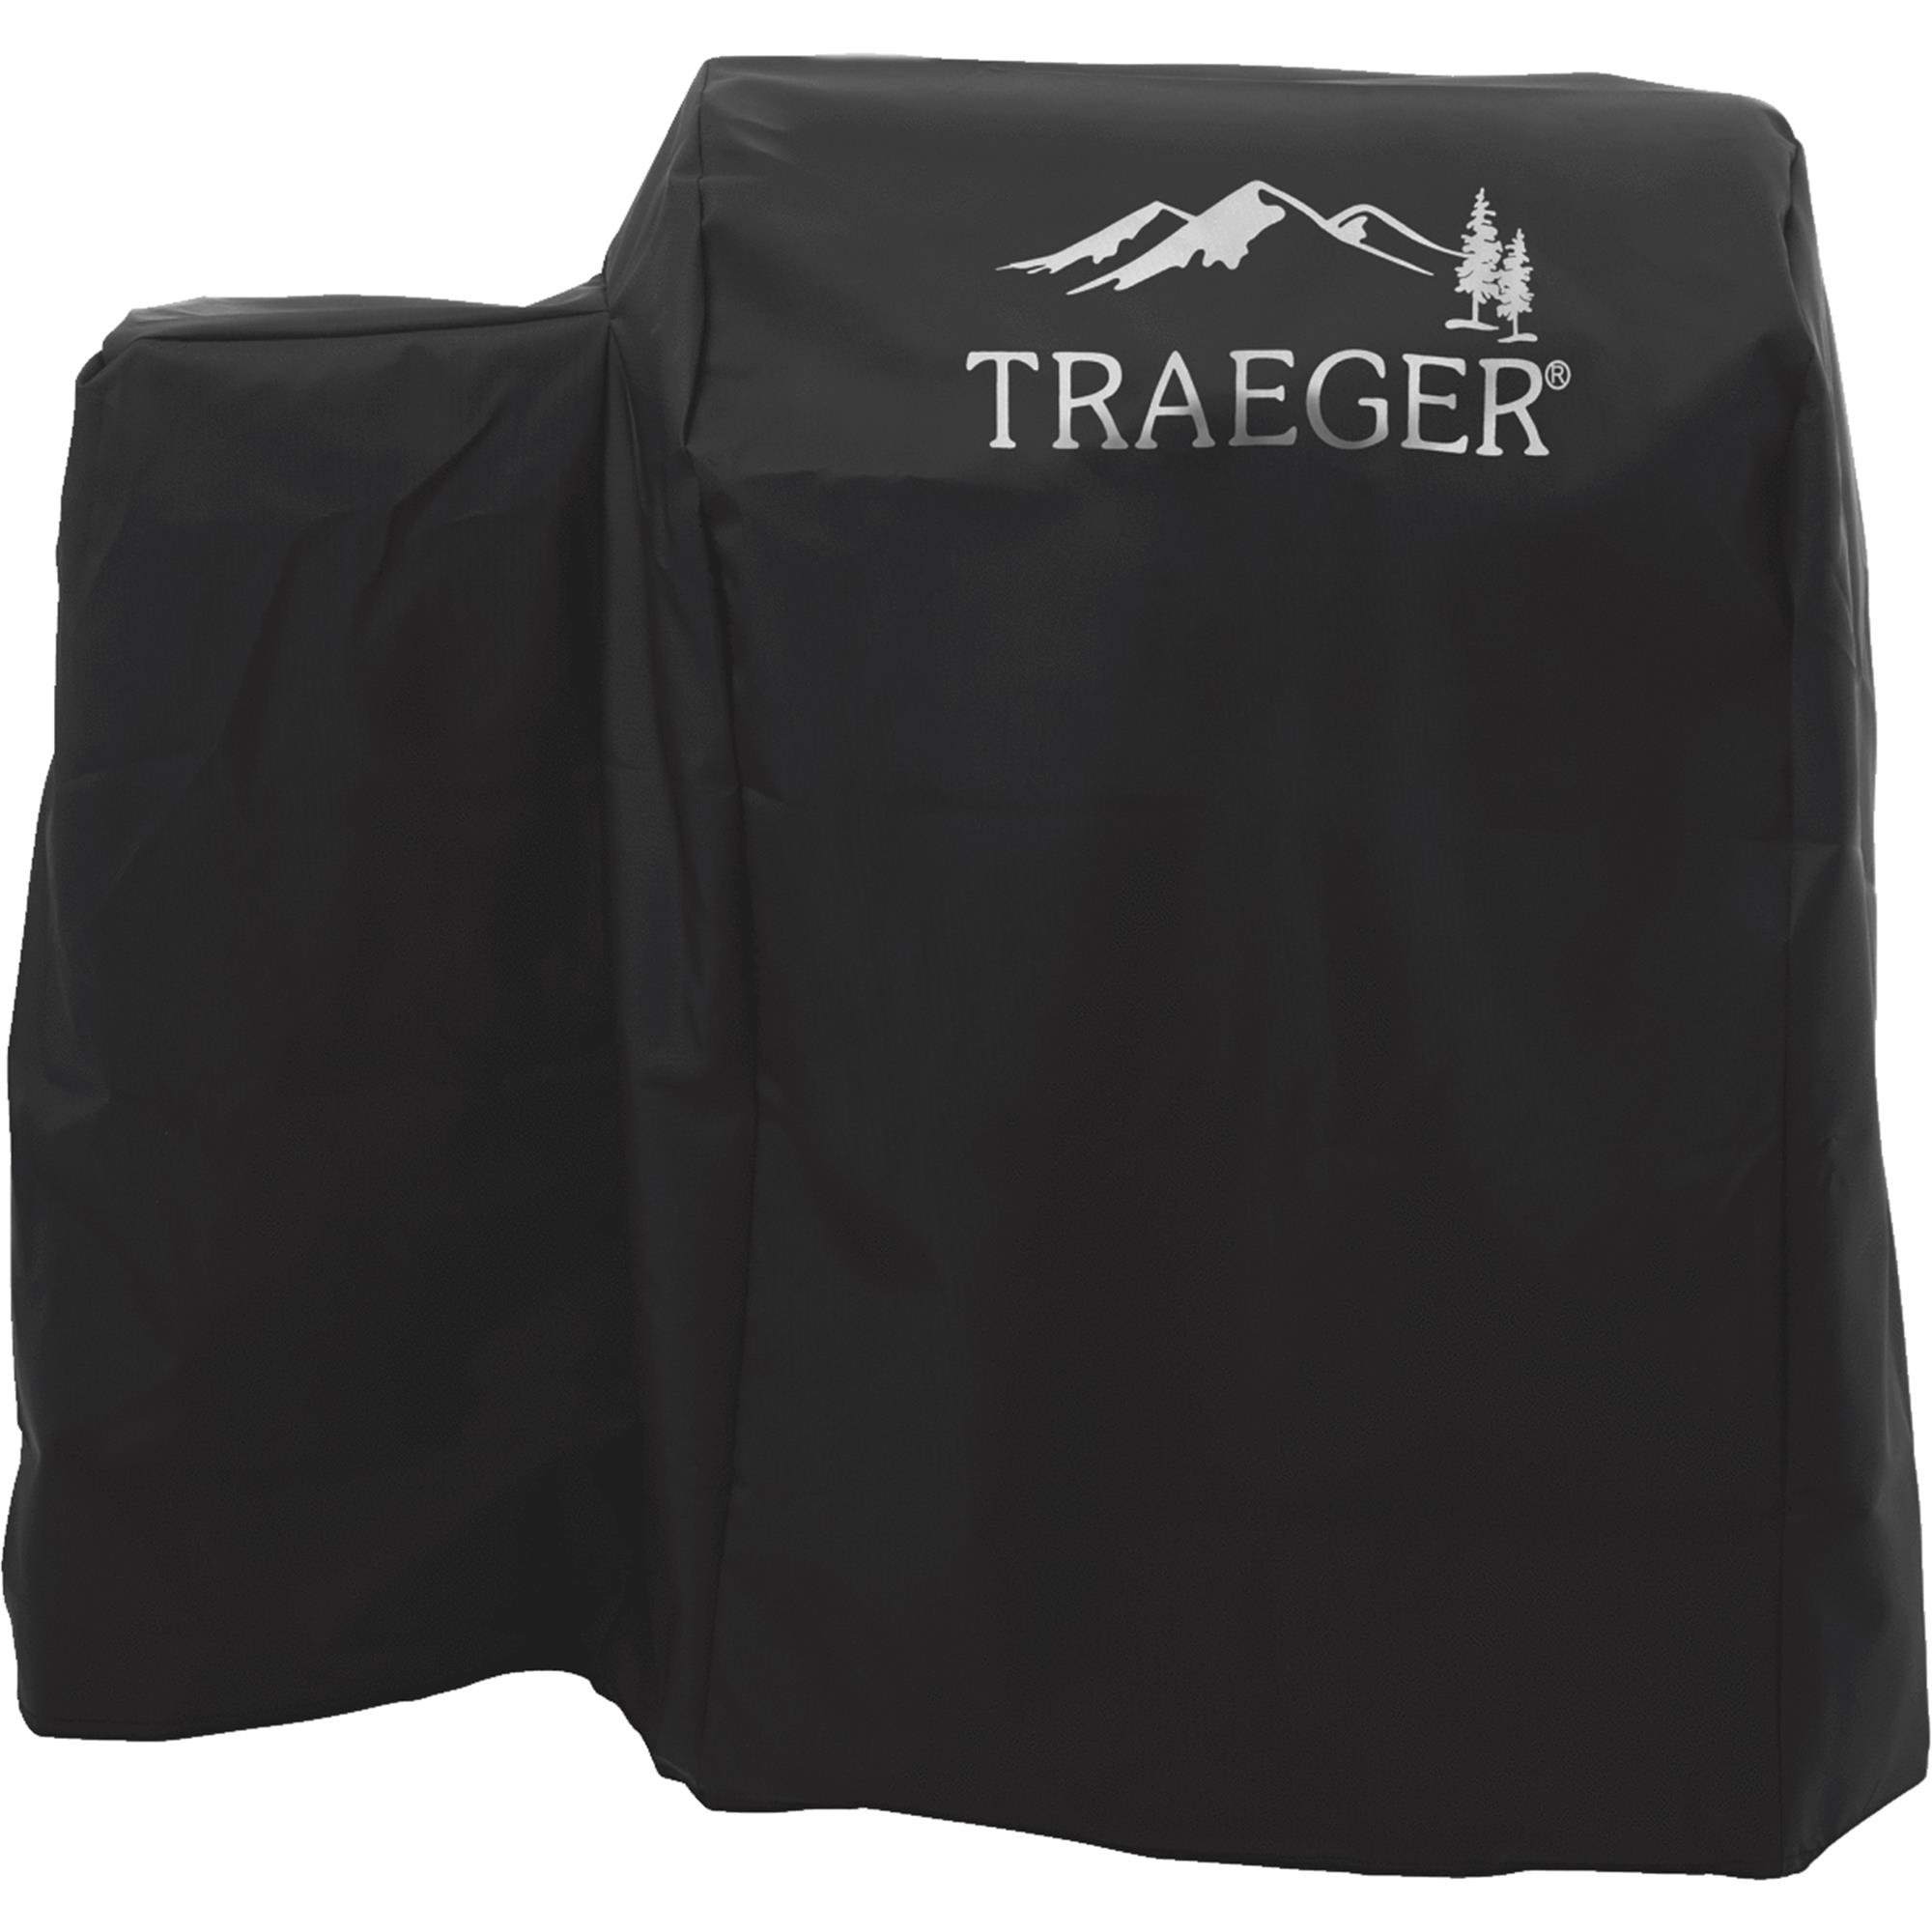 Traeger 20 Series 39 In. Grill Cover by Grill Covers